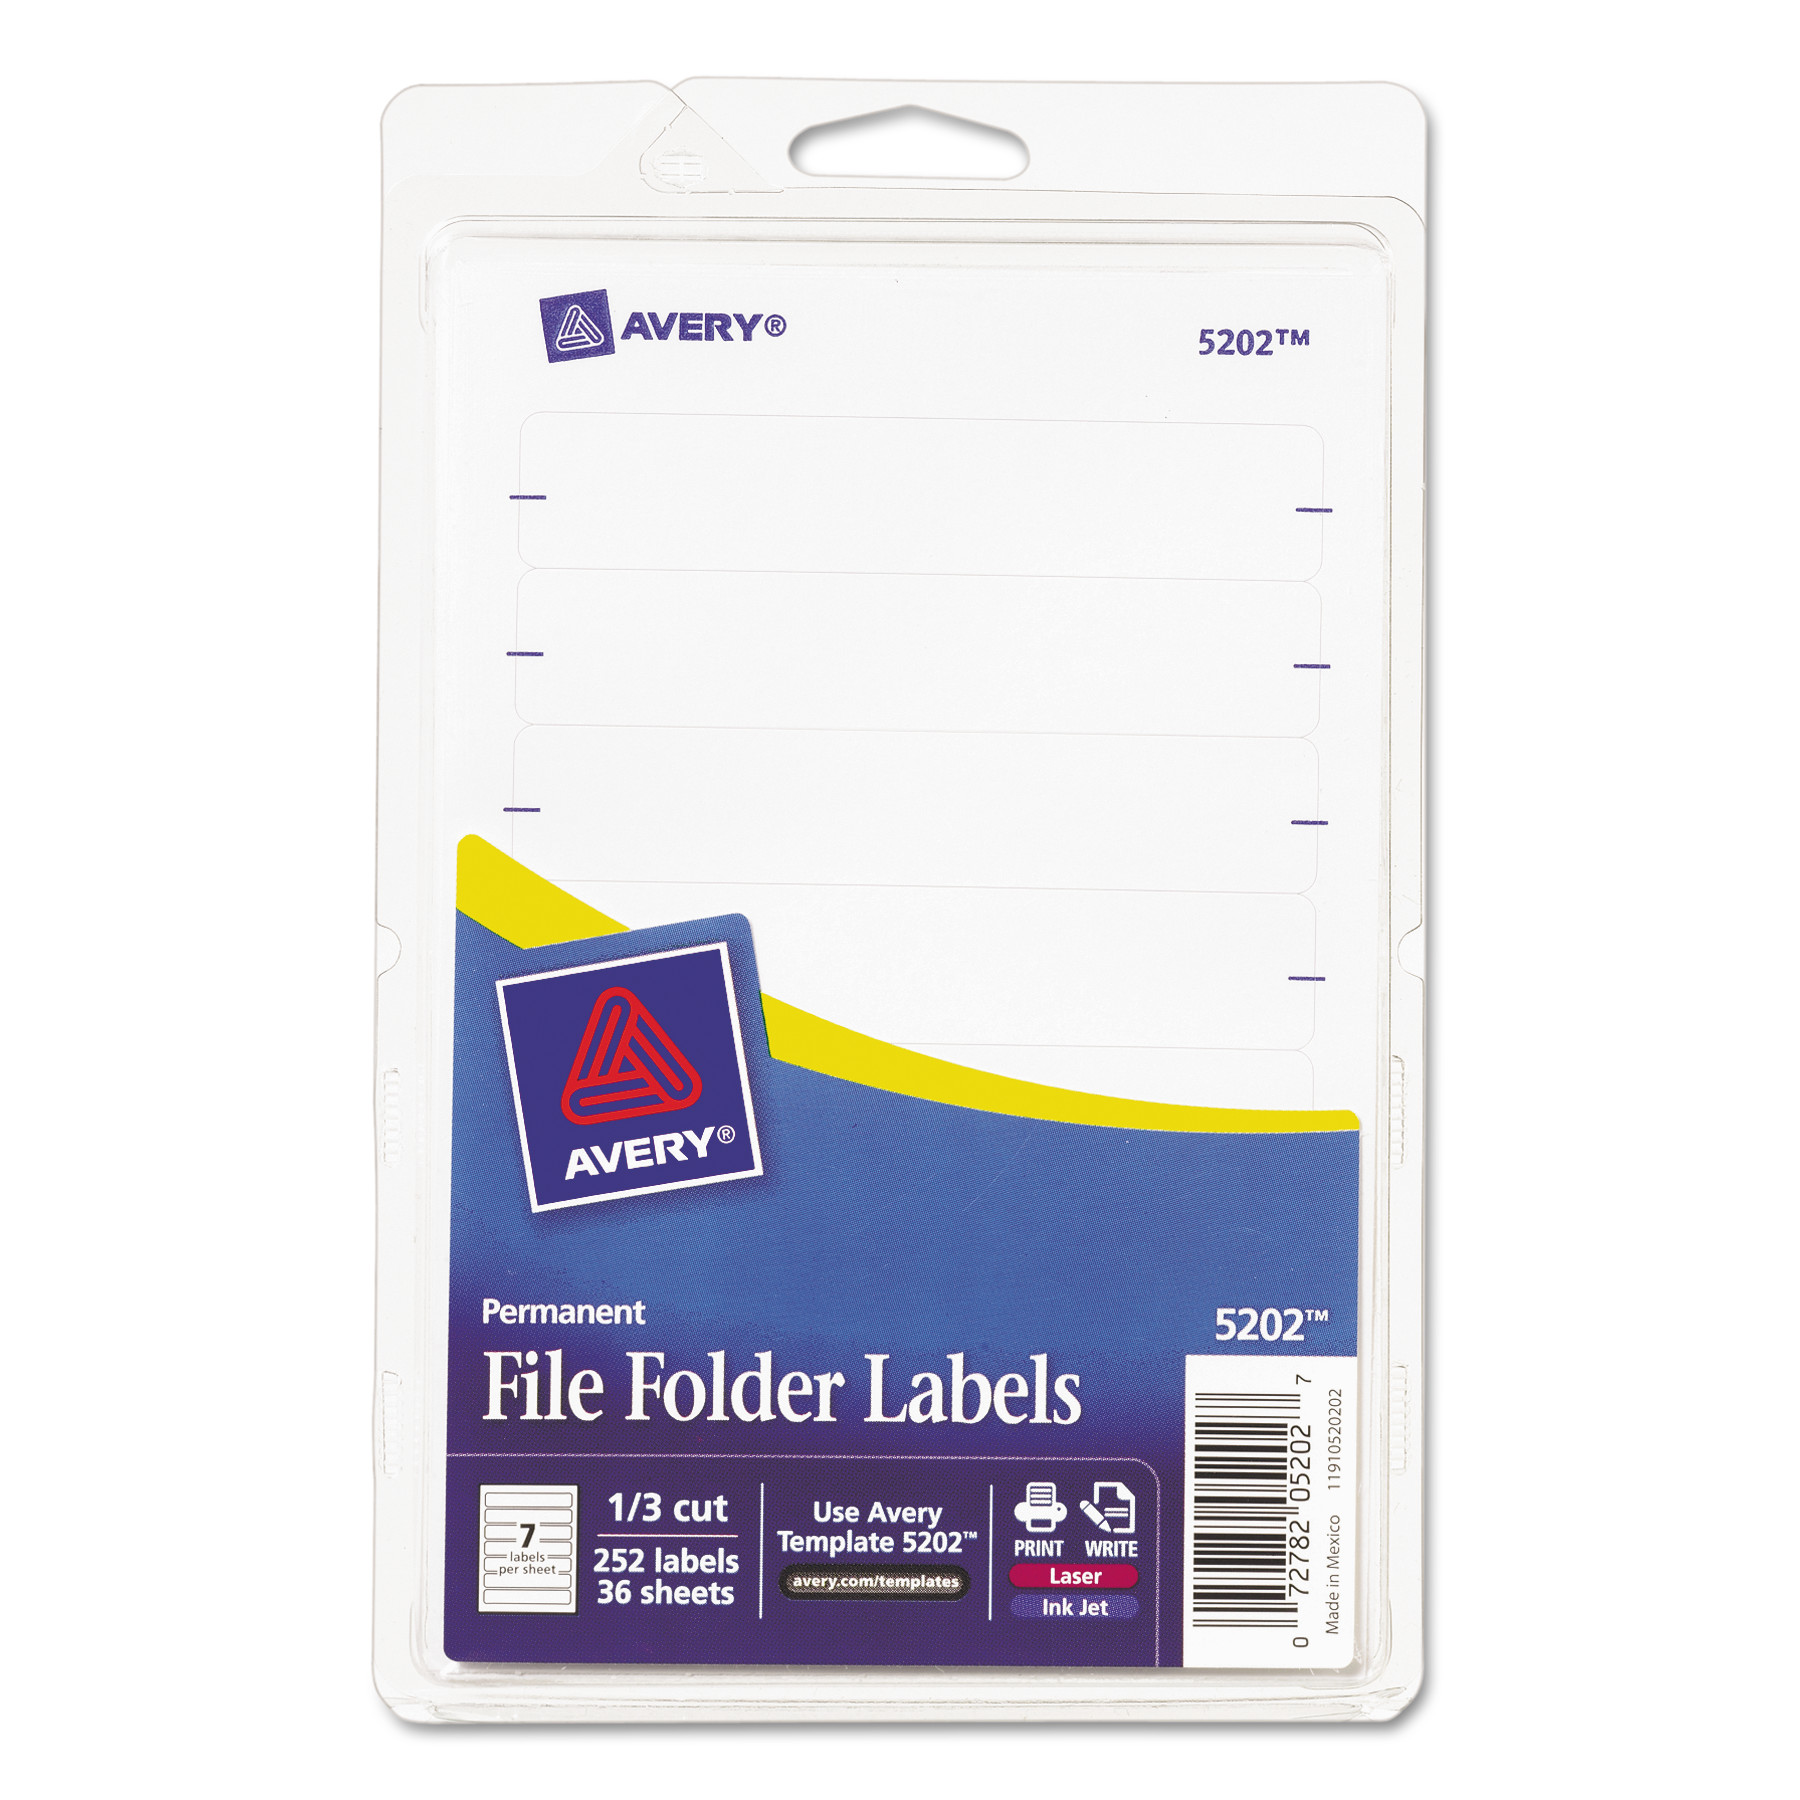 Avery File Folder Labels 5202, White, 1 3 Cut, Pack of 252 by Avery Products Corporation